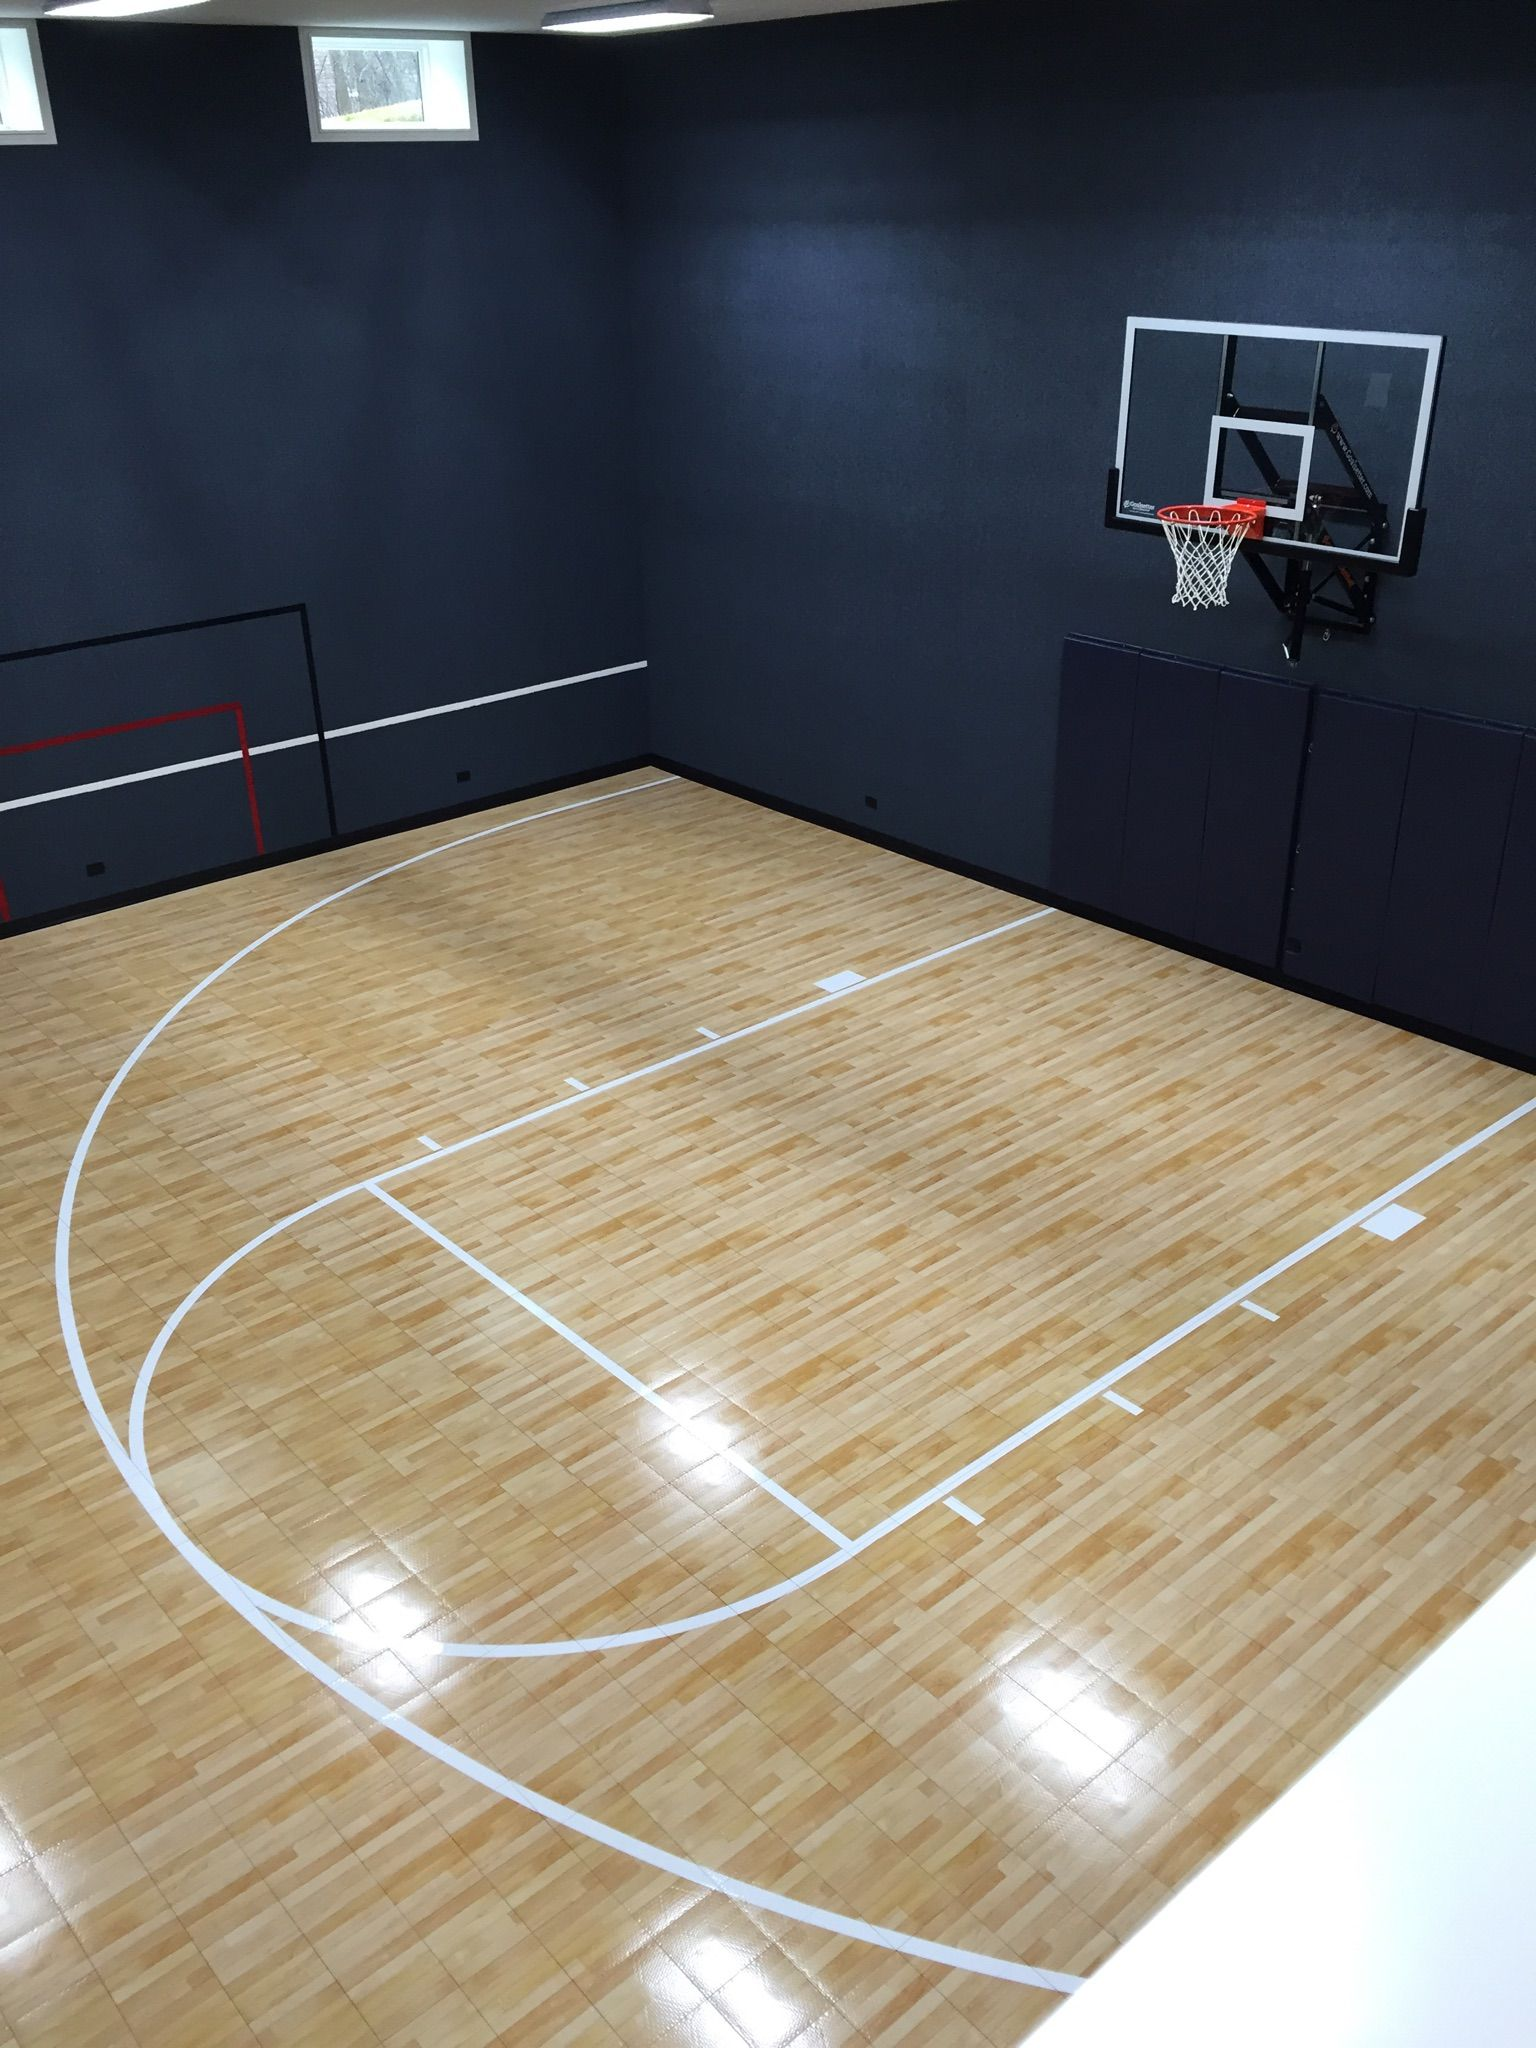 Indoor Court Using Maple Select Beautiful Choice Basketball Room Indoor Basketball Court Home Basketball Court